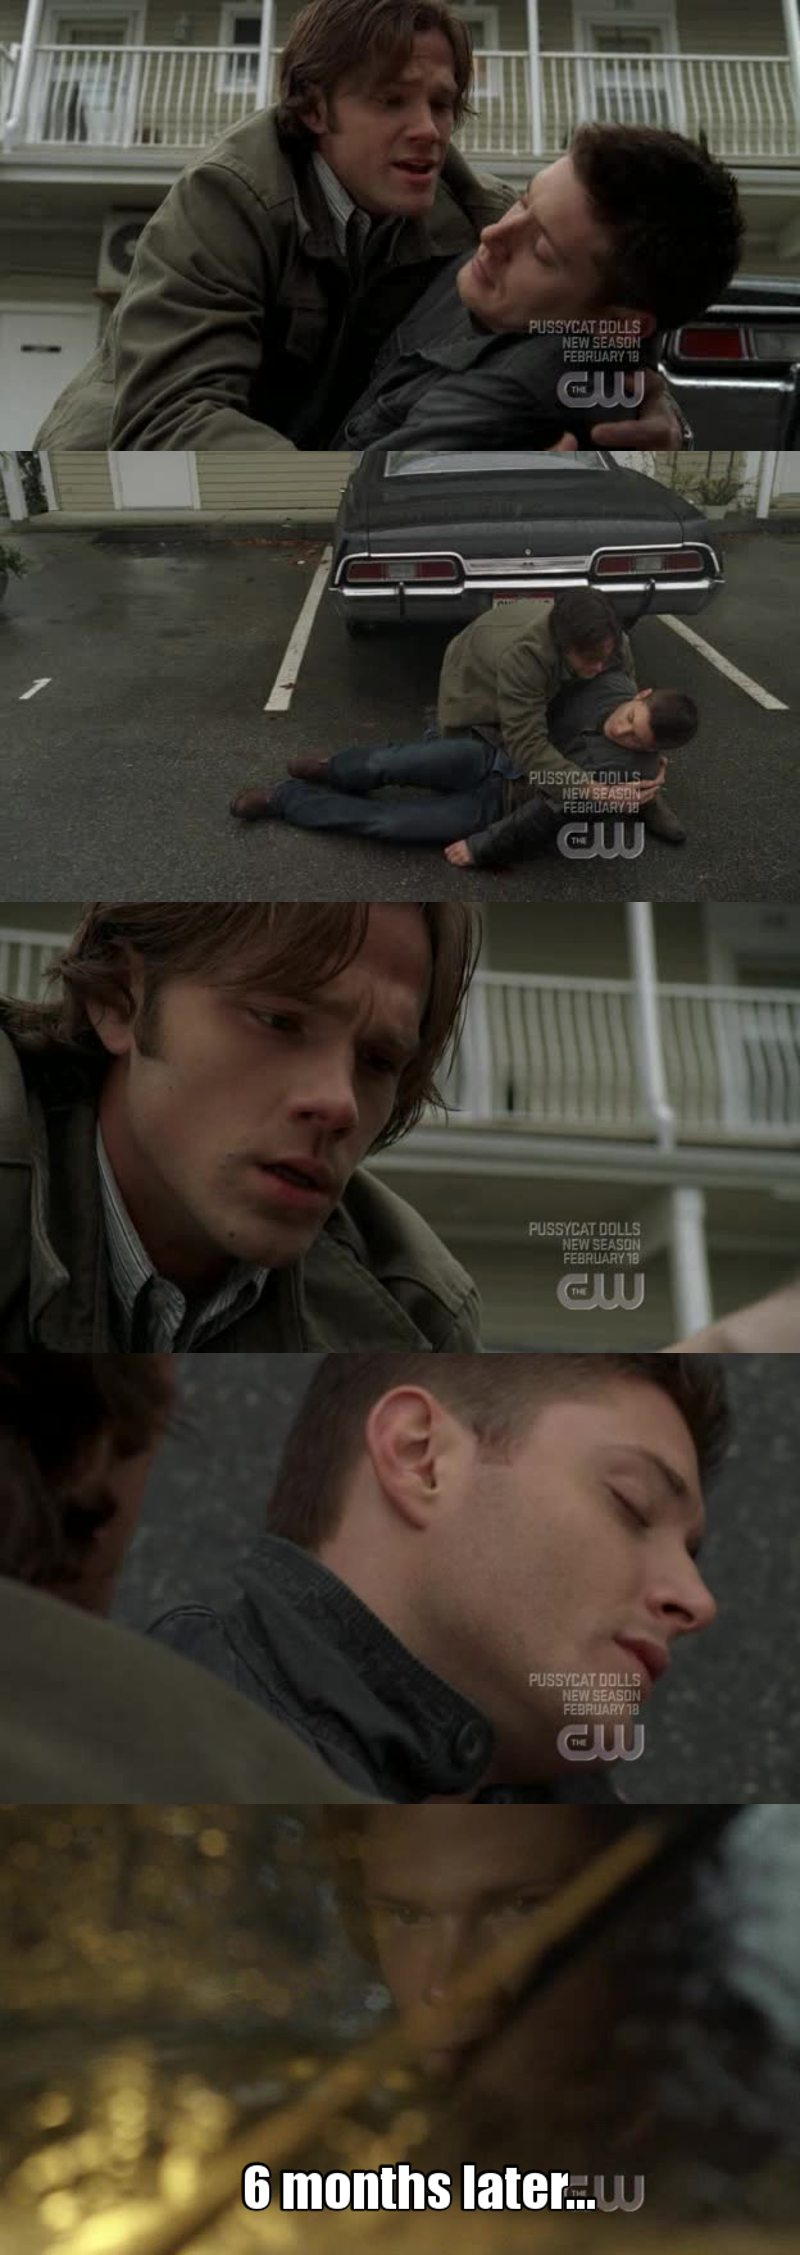 "I knew there was 11 seasons but... I was really freaking out! 😨 Poor Sam! How much time is Dean dead??? 😂 The ""6 months later"" terrified me a bit... 😢☺️"